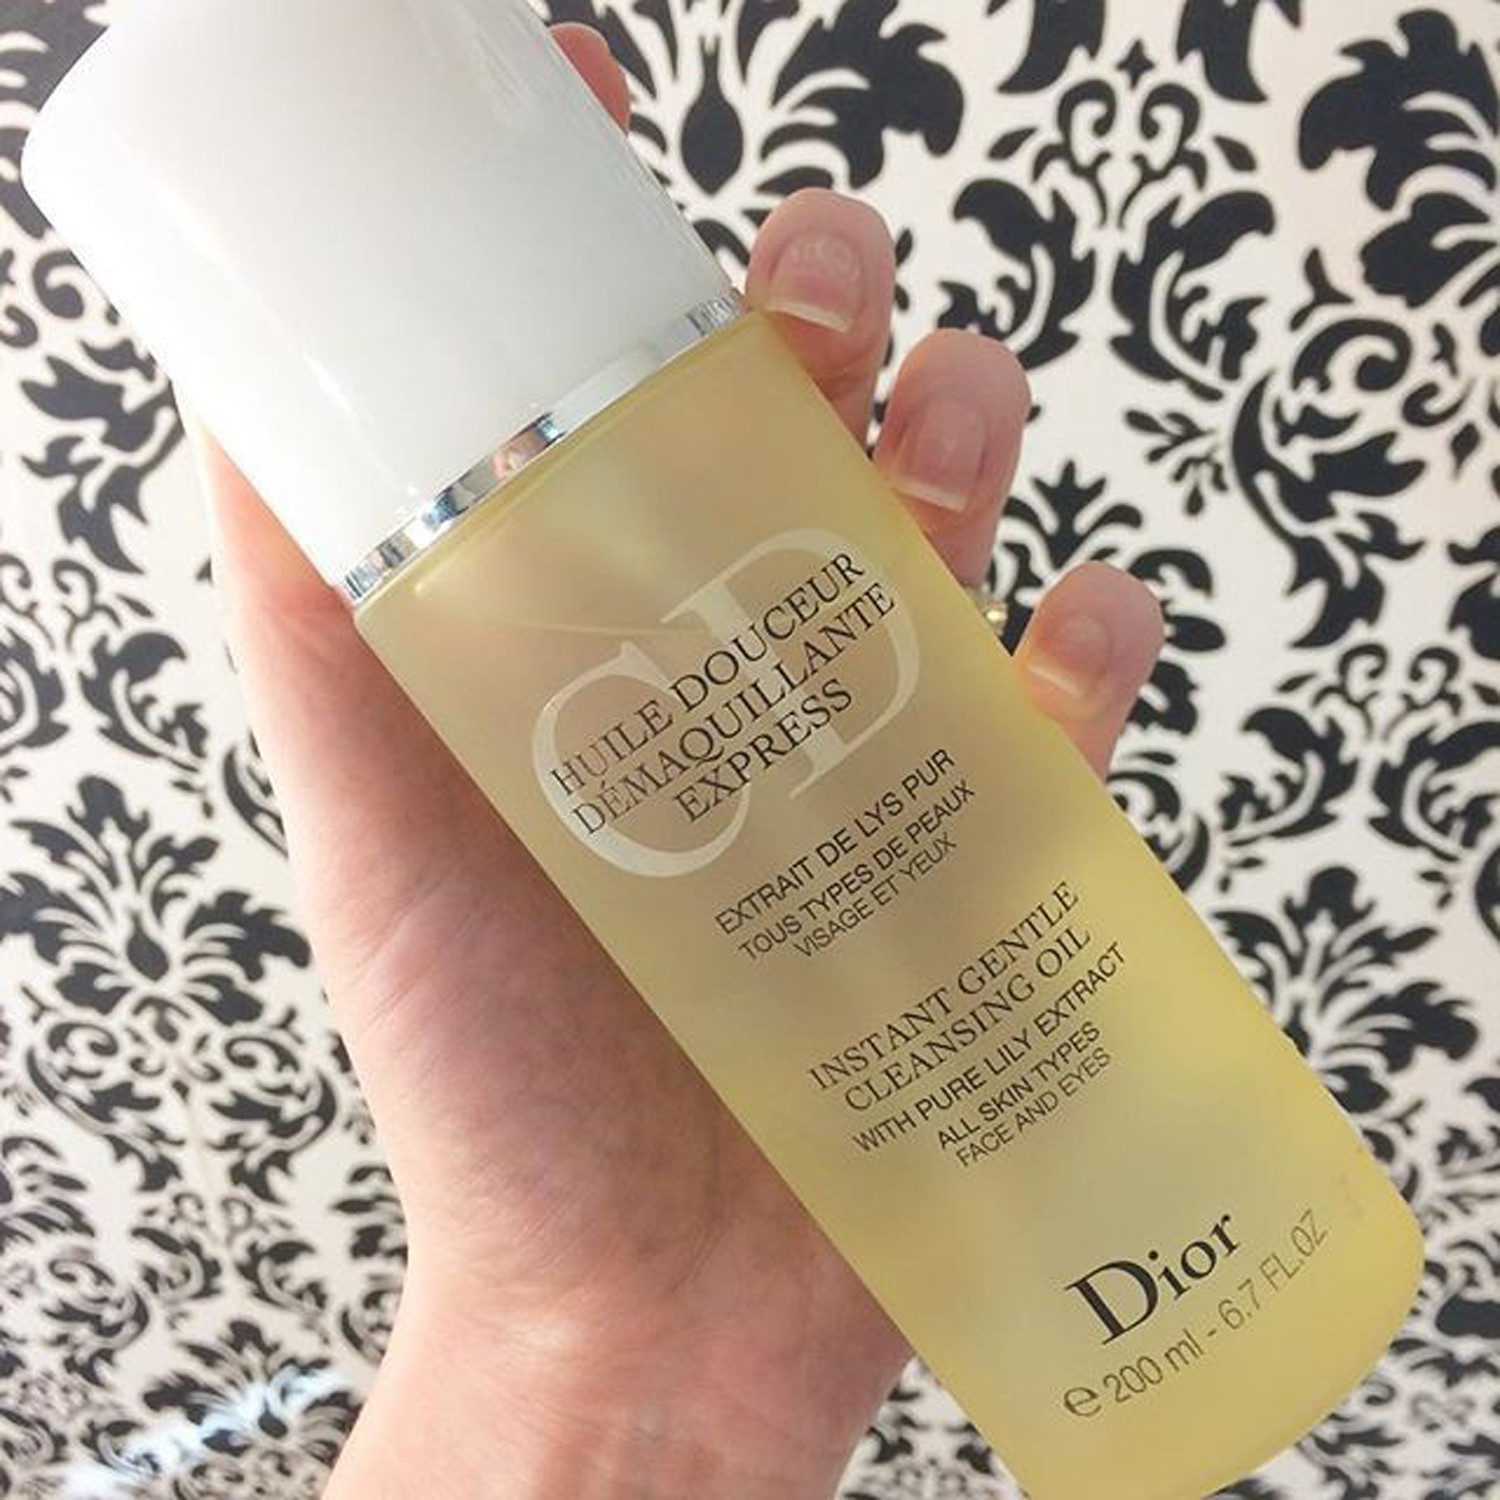 Óleo demaquilante Dior Instant Gentle Cleansing Oil